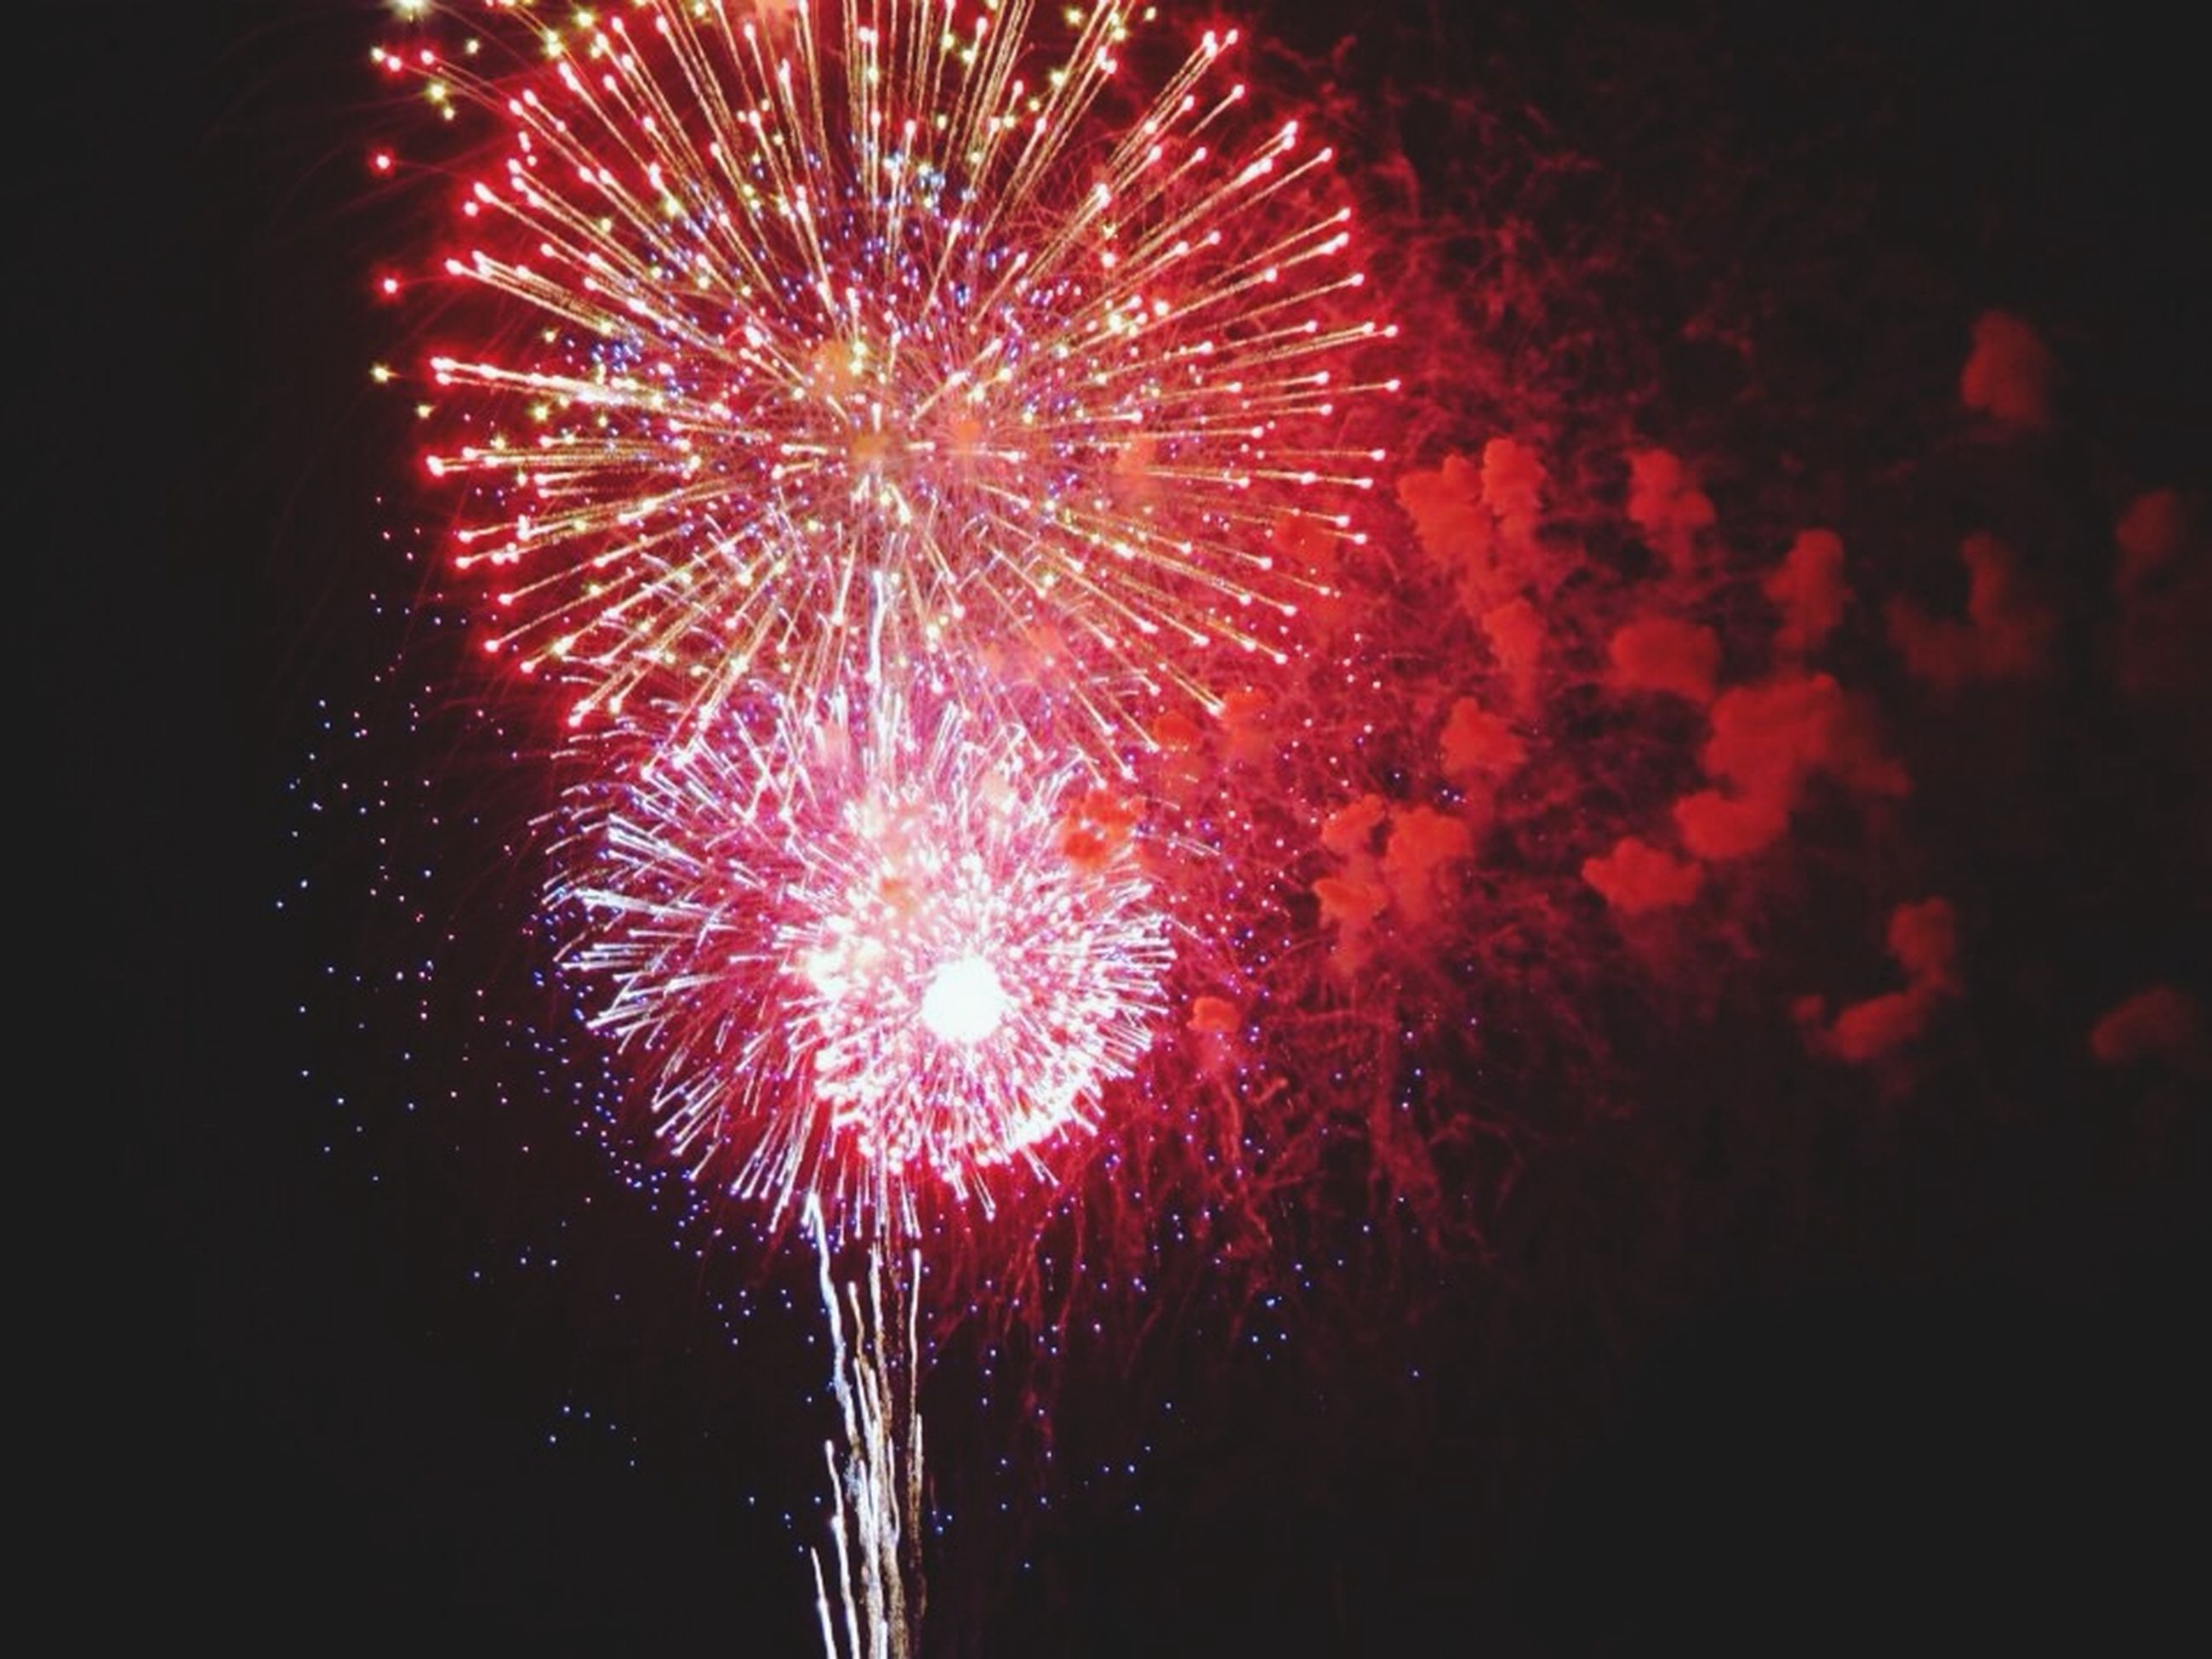 night, firework display, exploding, long exposure, celebration, glowing, illuminated, firework - man made object, motion, arts culture and entertainment, sparks, event, firework, fire - natural phenomenon, low angle view, blurred motion, entertainment, multi colored, celebration event, sky